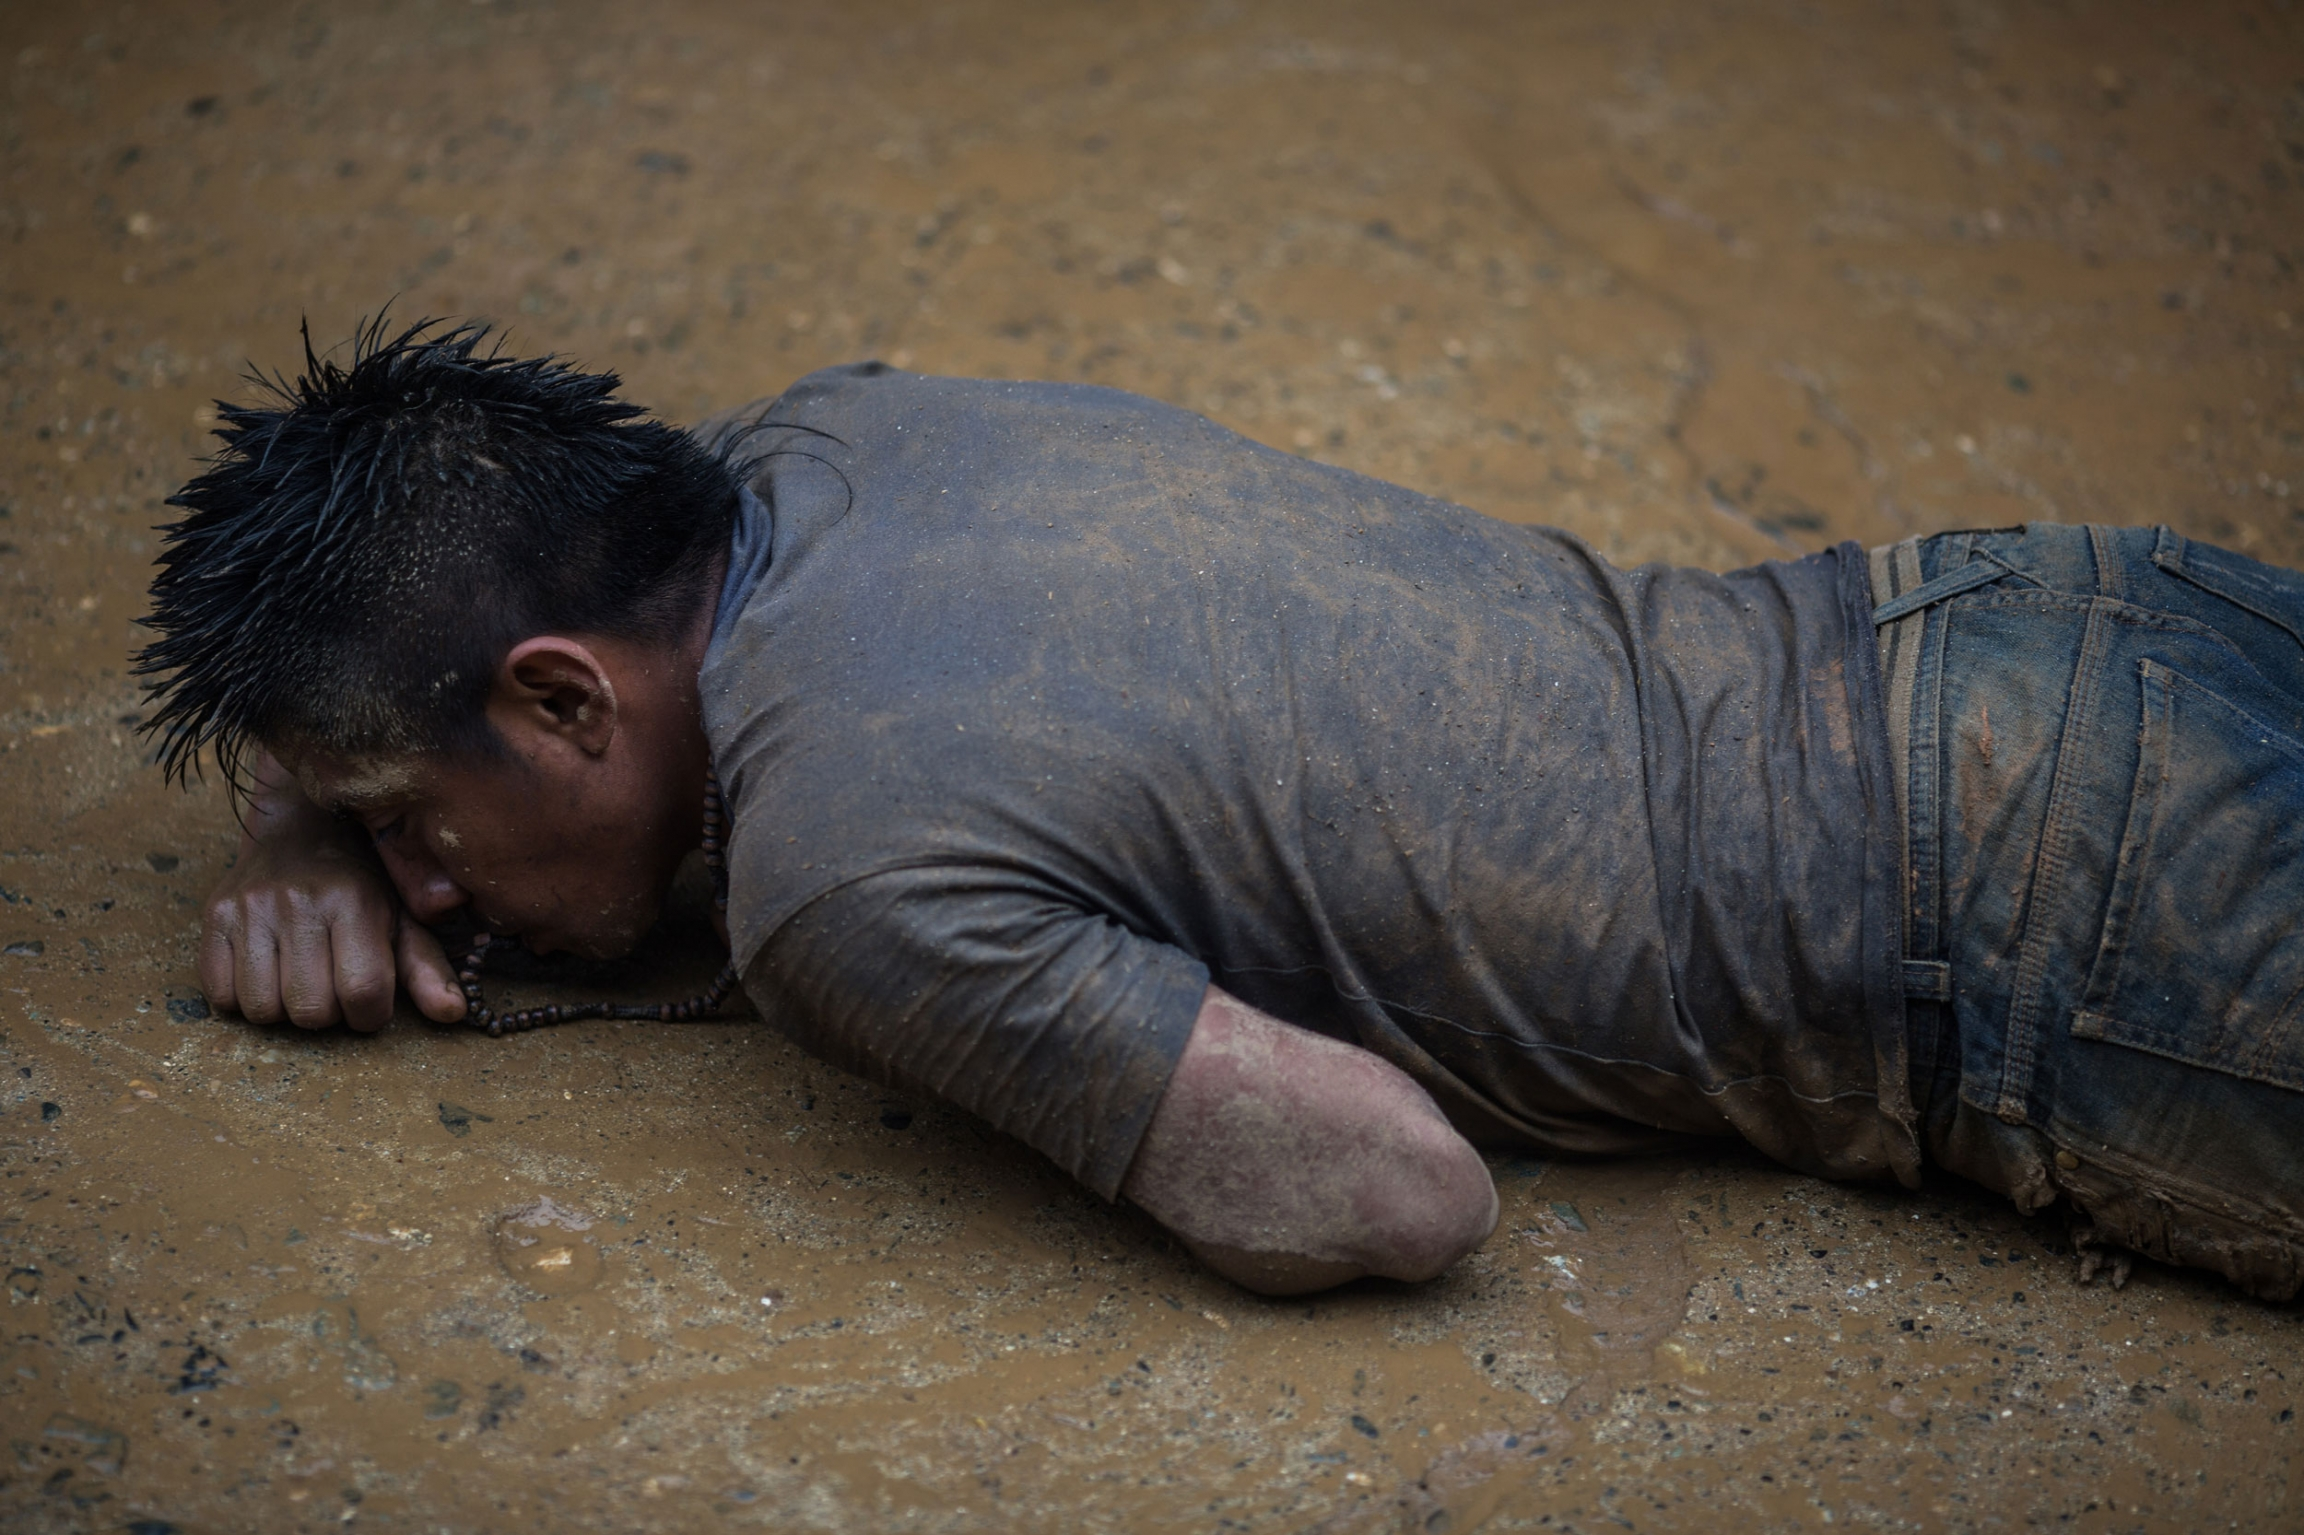 A man is shown crawling on his stomach in the mud and covered in dirt.